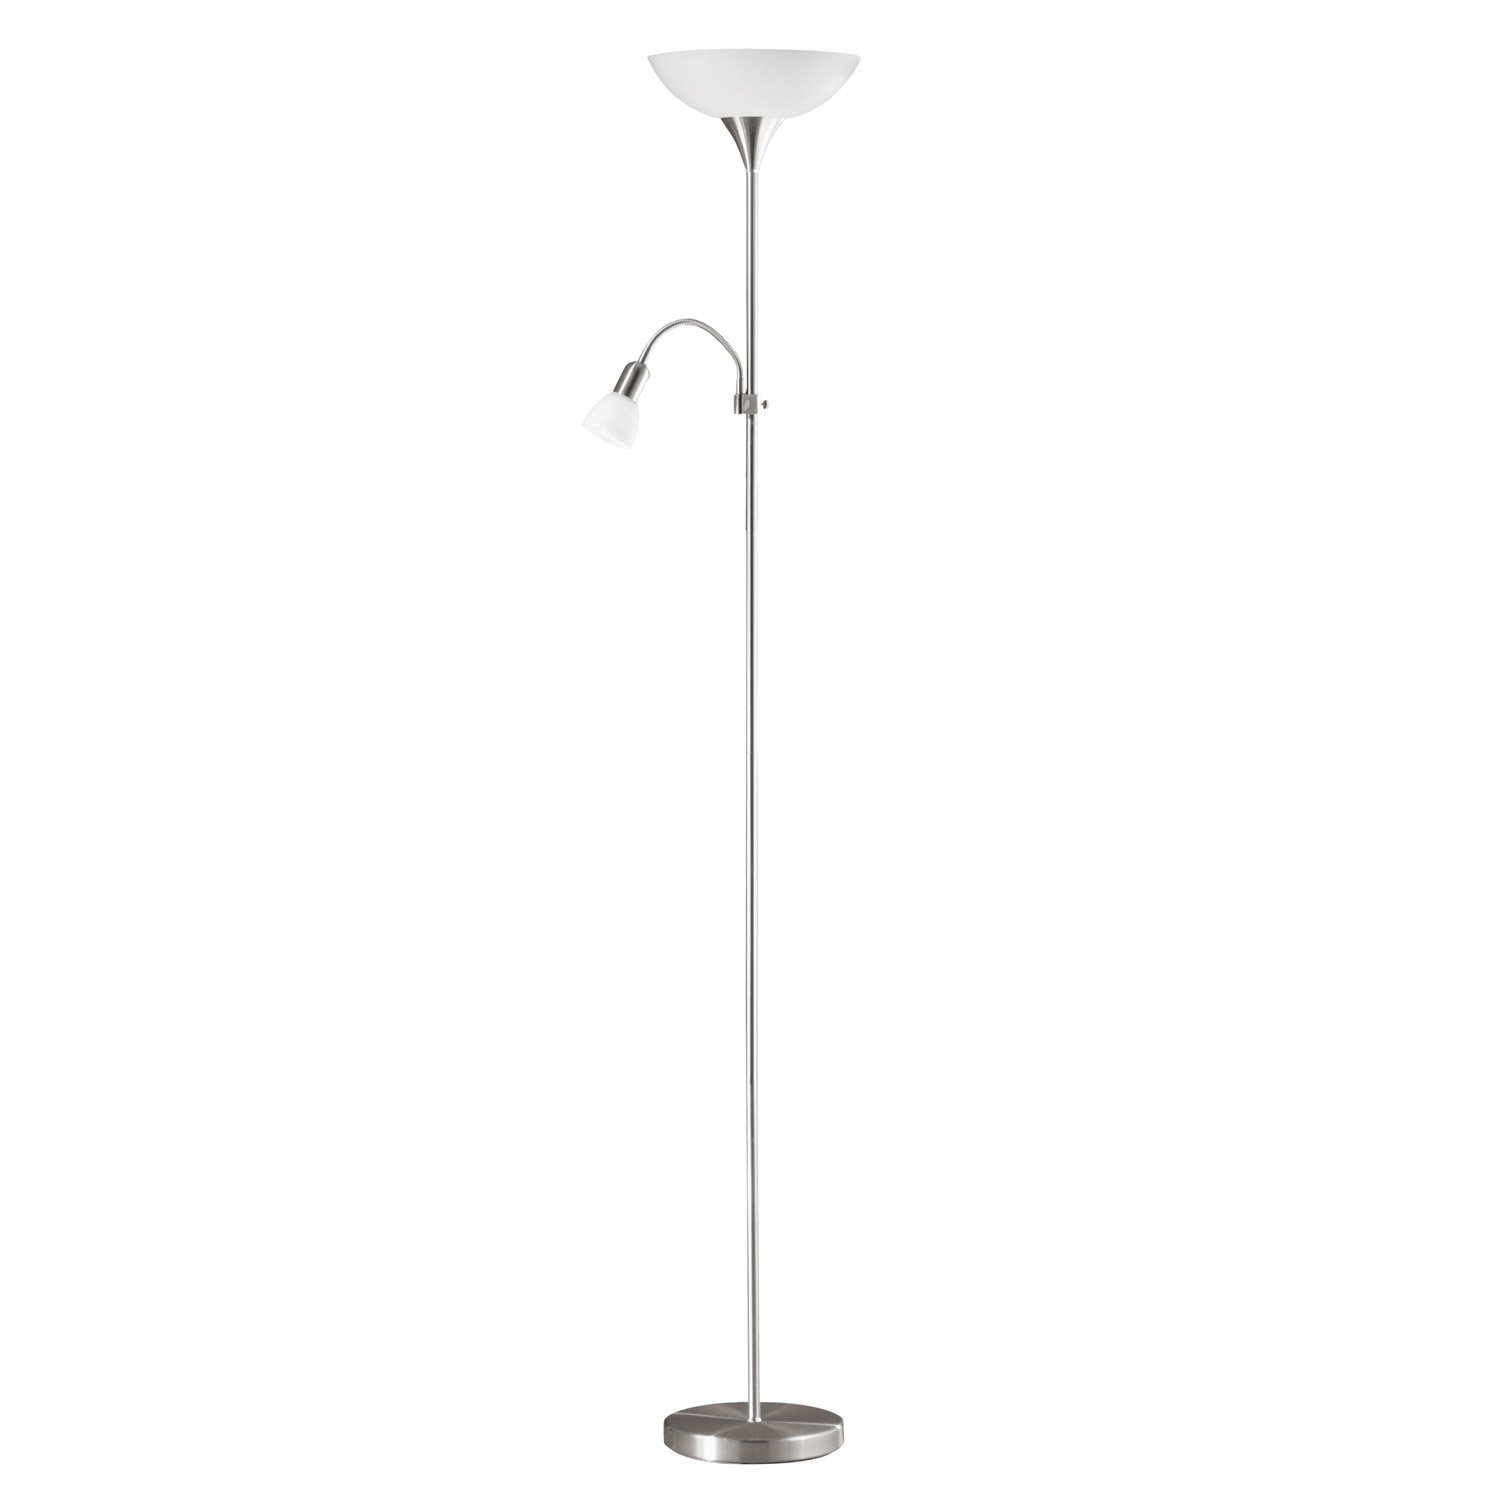 lampadaire avec liseuse up eglo 178 cm blanc 100 w leroy merlin. Black Bedroom Furniture Sets. Home Design Ideas